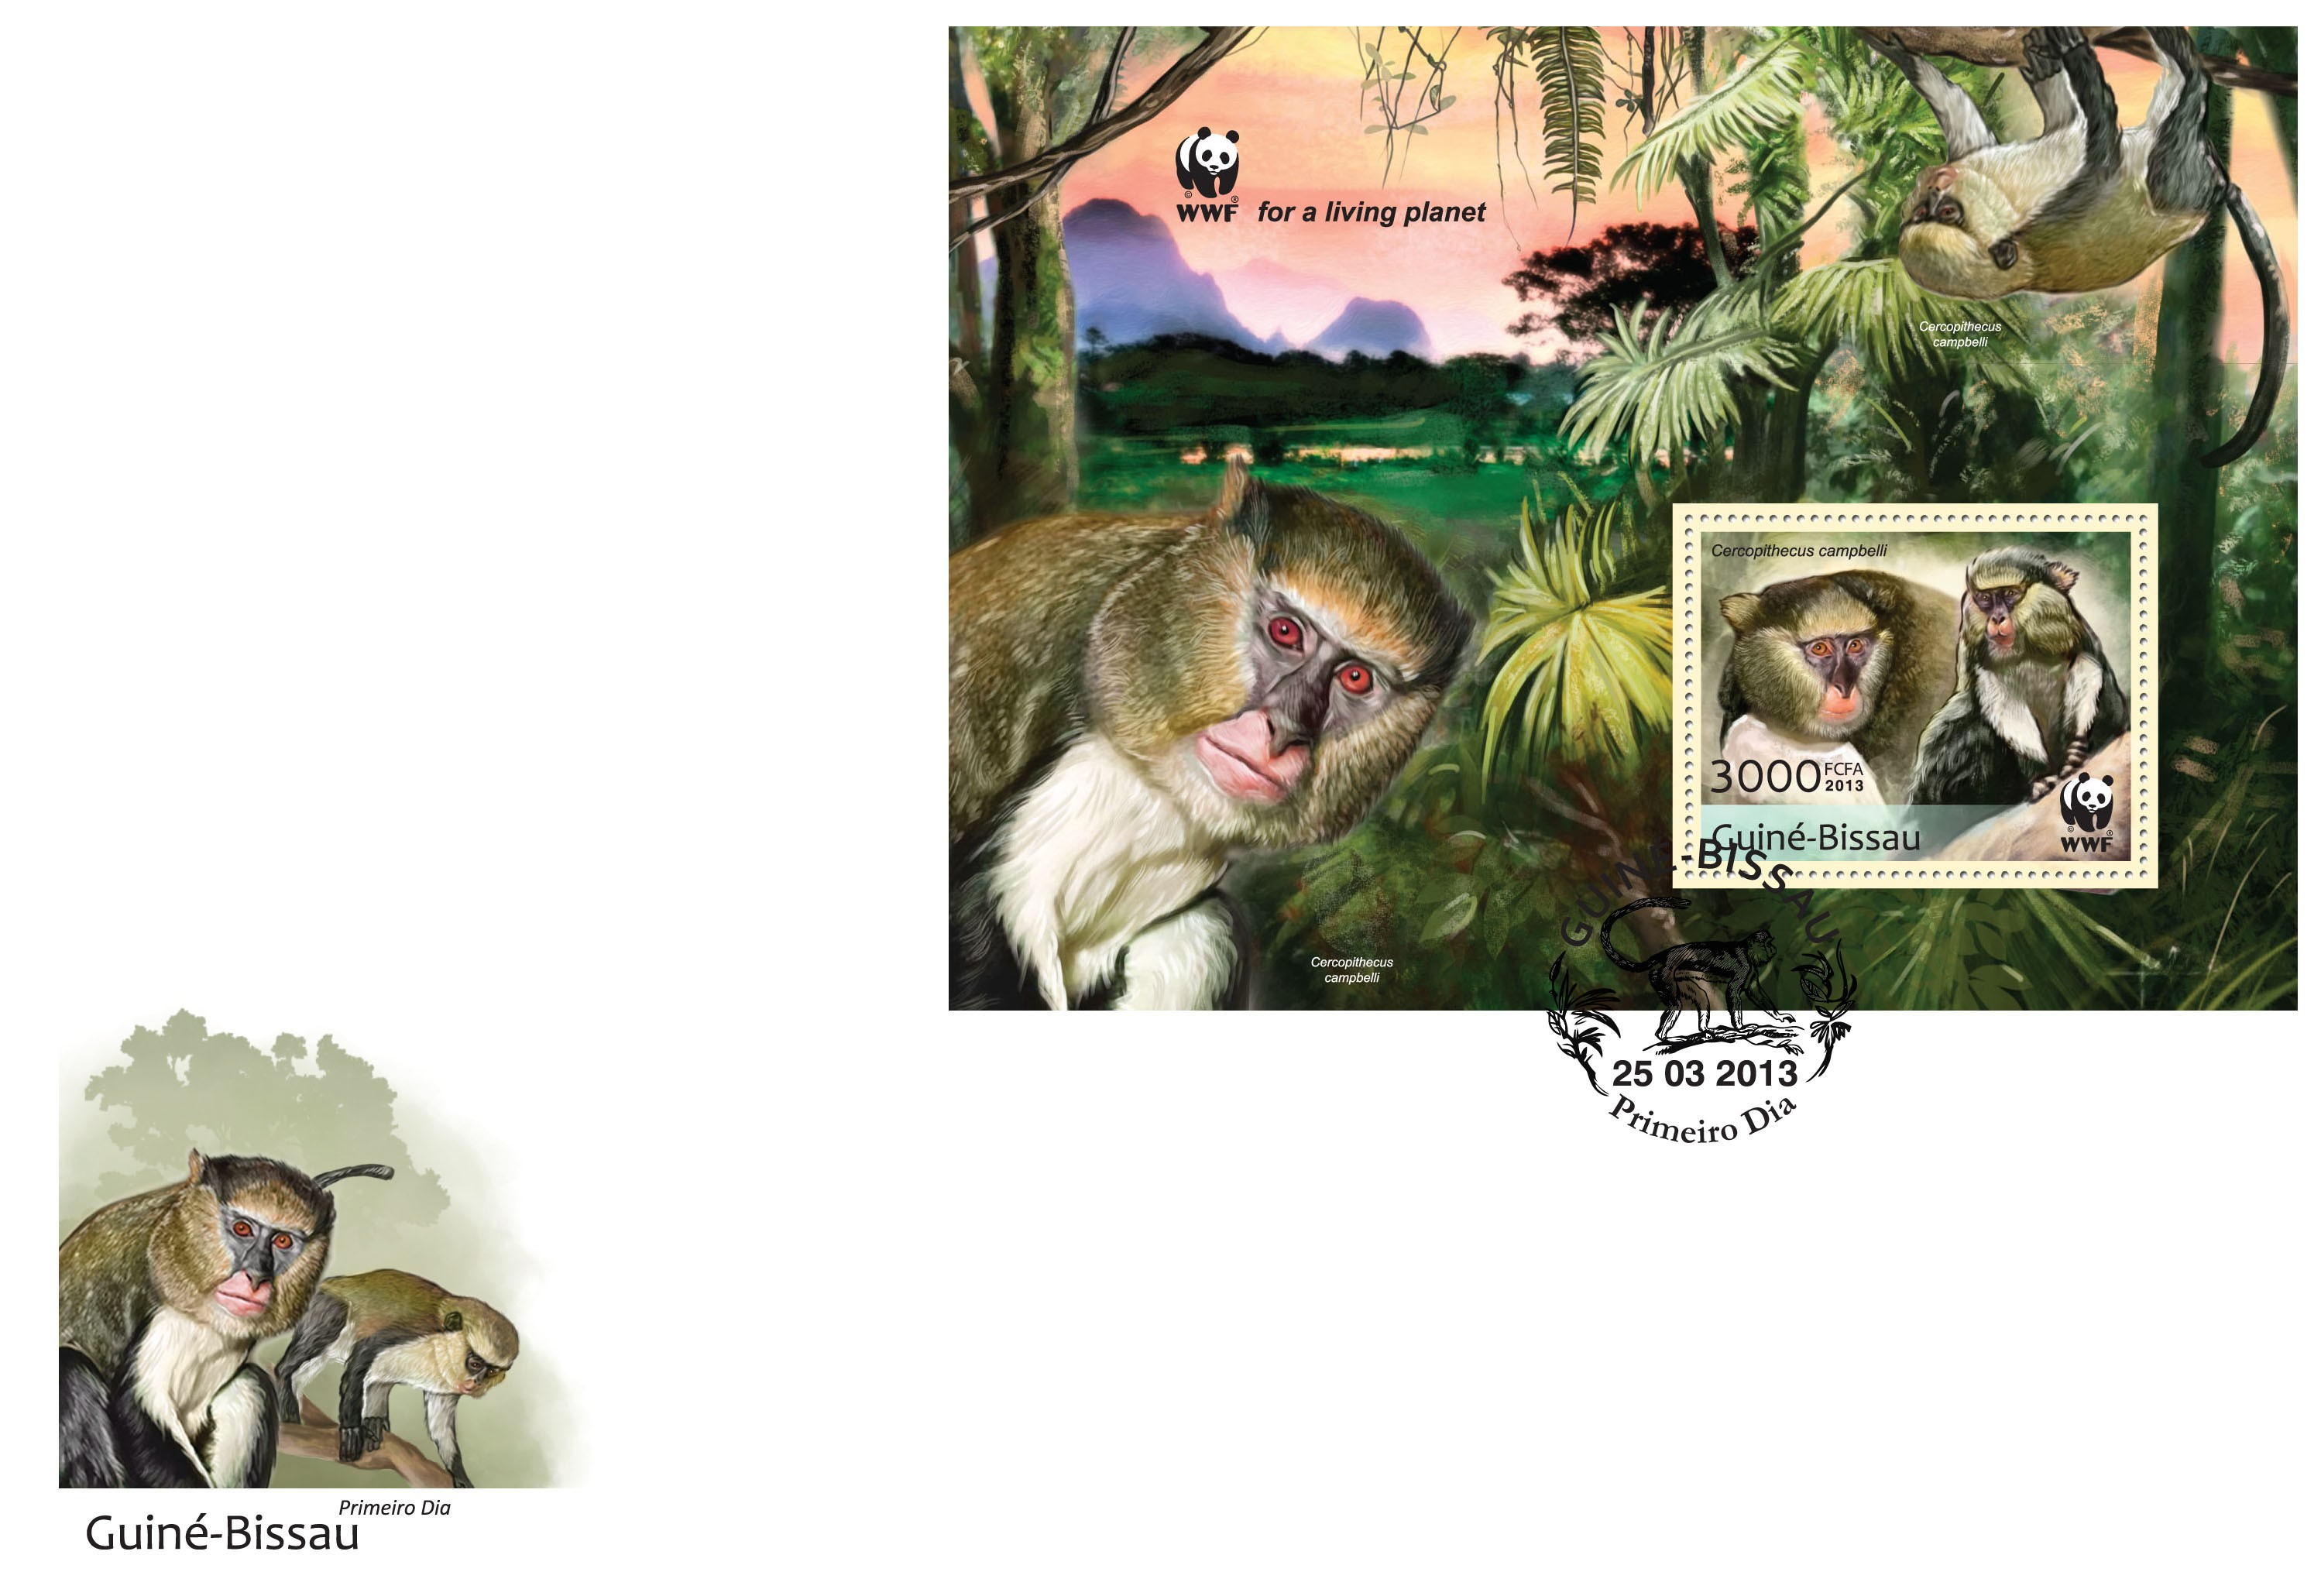 WWF - Monkeys (Cercopithecus campgelli) Souvenir sheet - FDC - Issue of Guinée-Bissau postage stamps